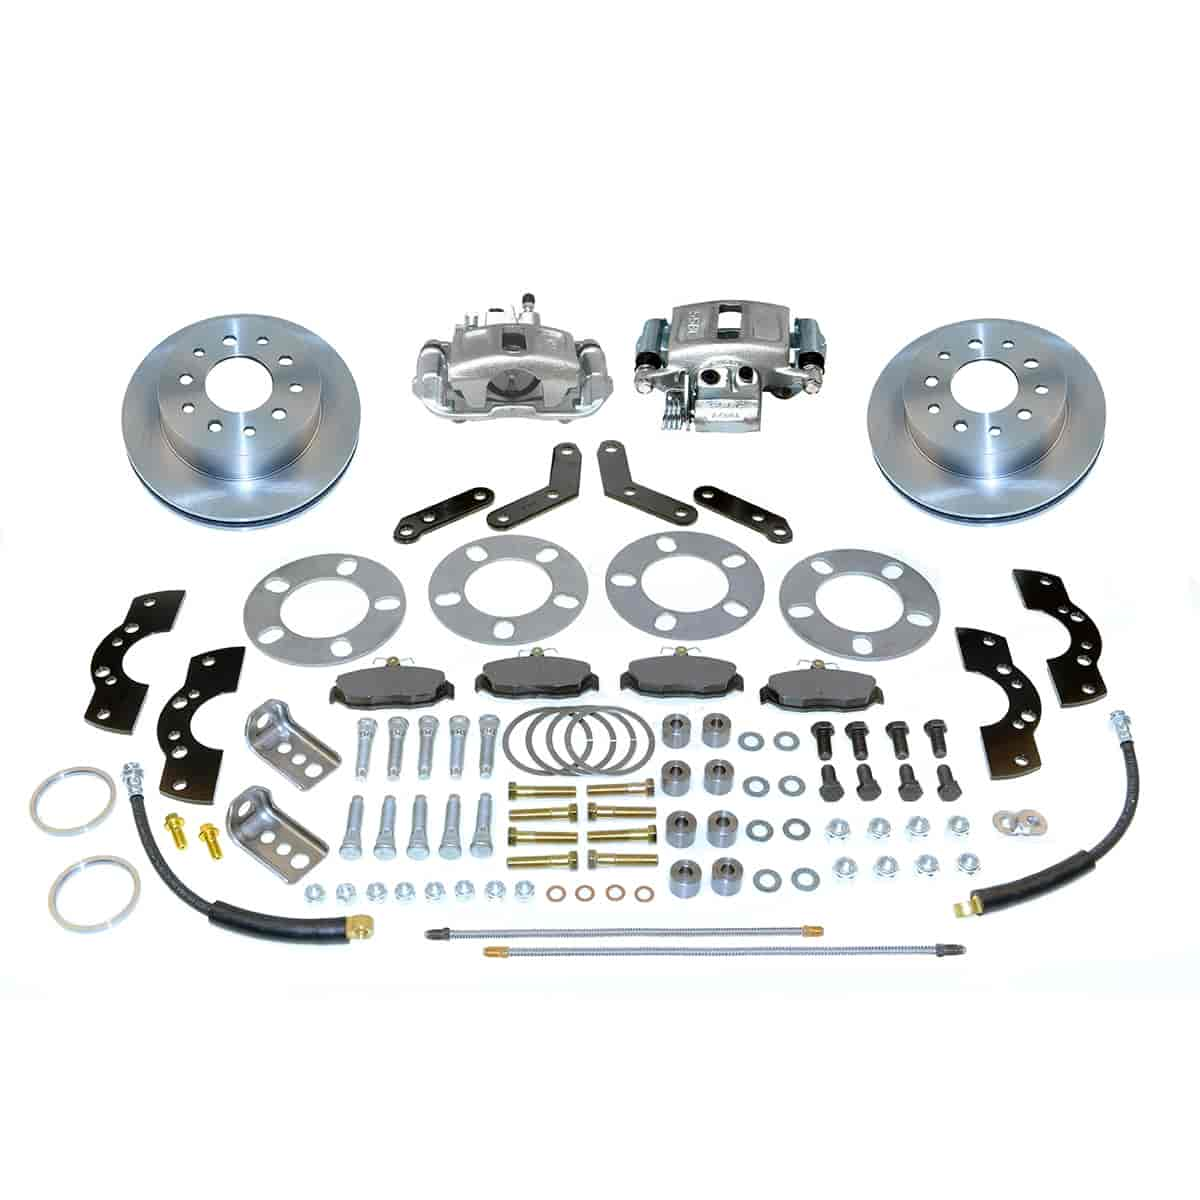 Stainless Steel Brakes A111-2 - Stainless Steel Brakes Single Piston Rear Disc Brake Conversion Kit